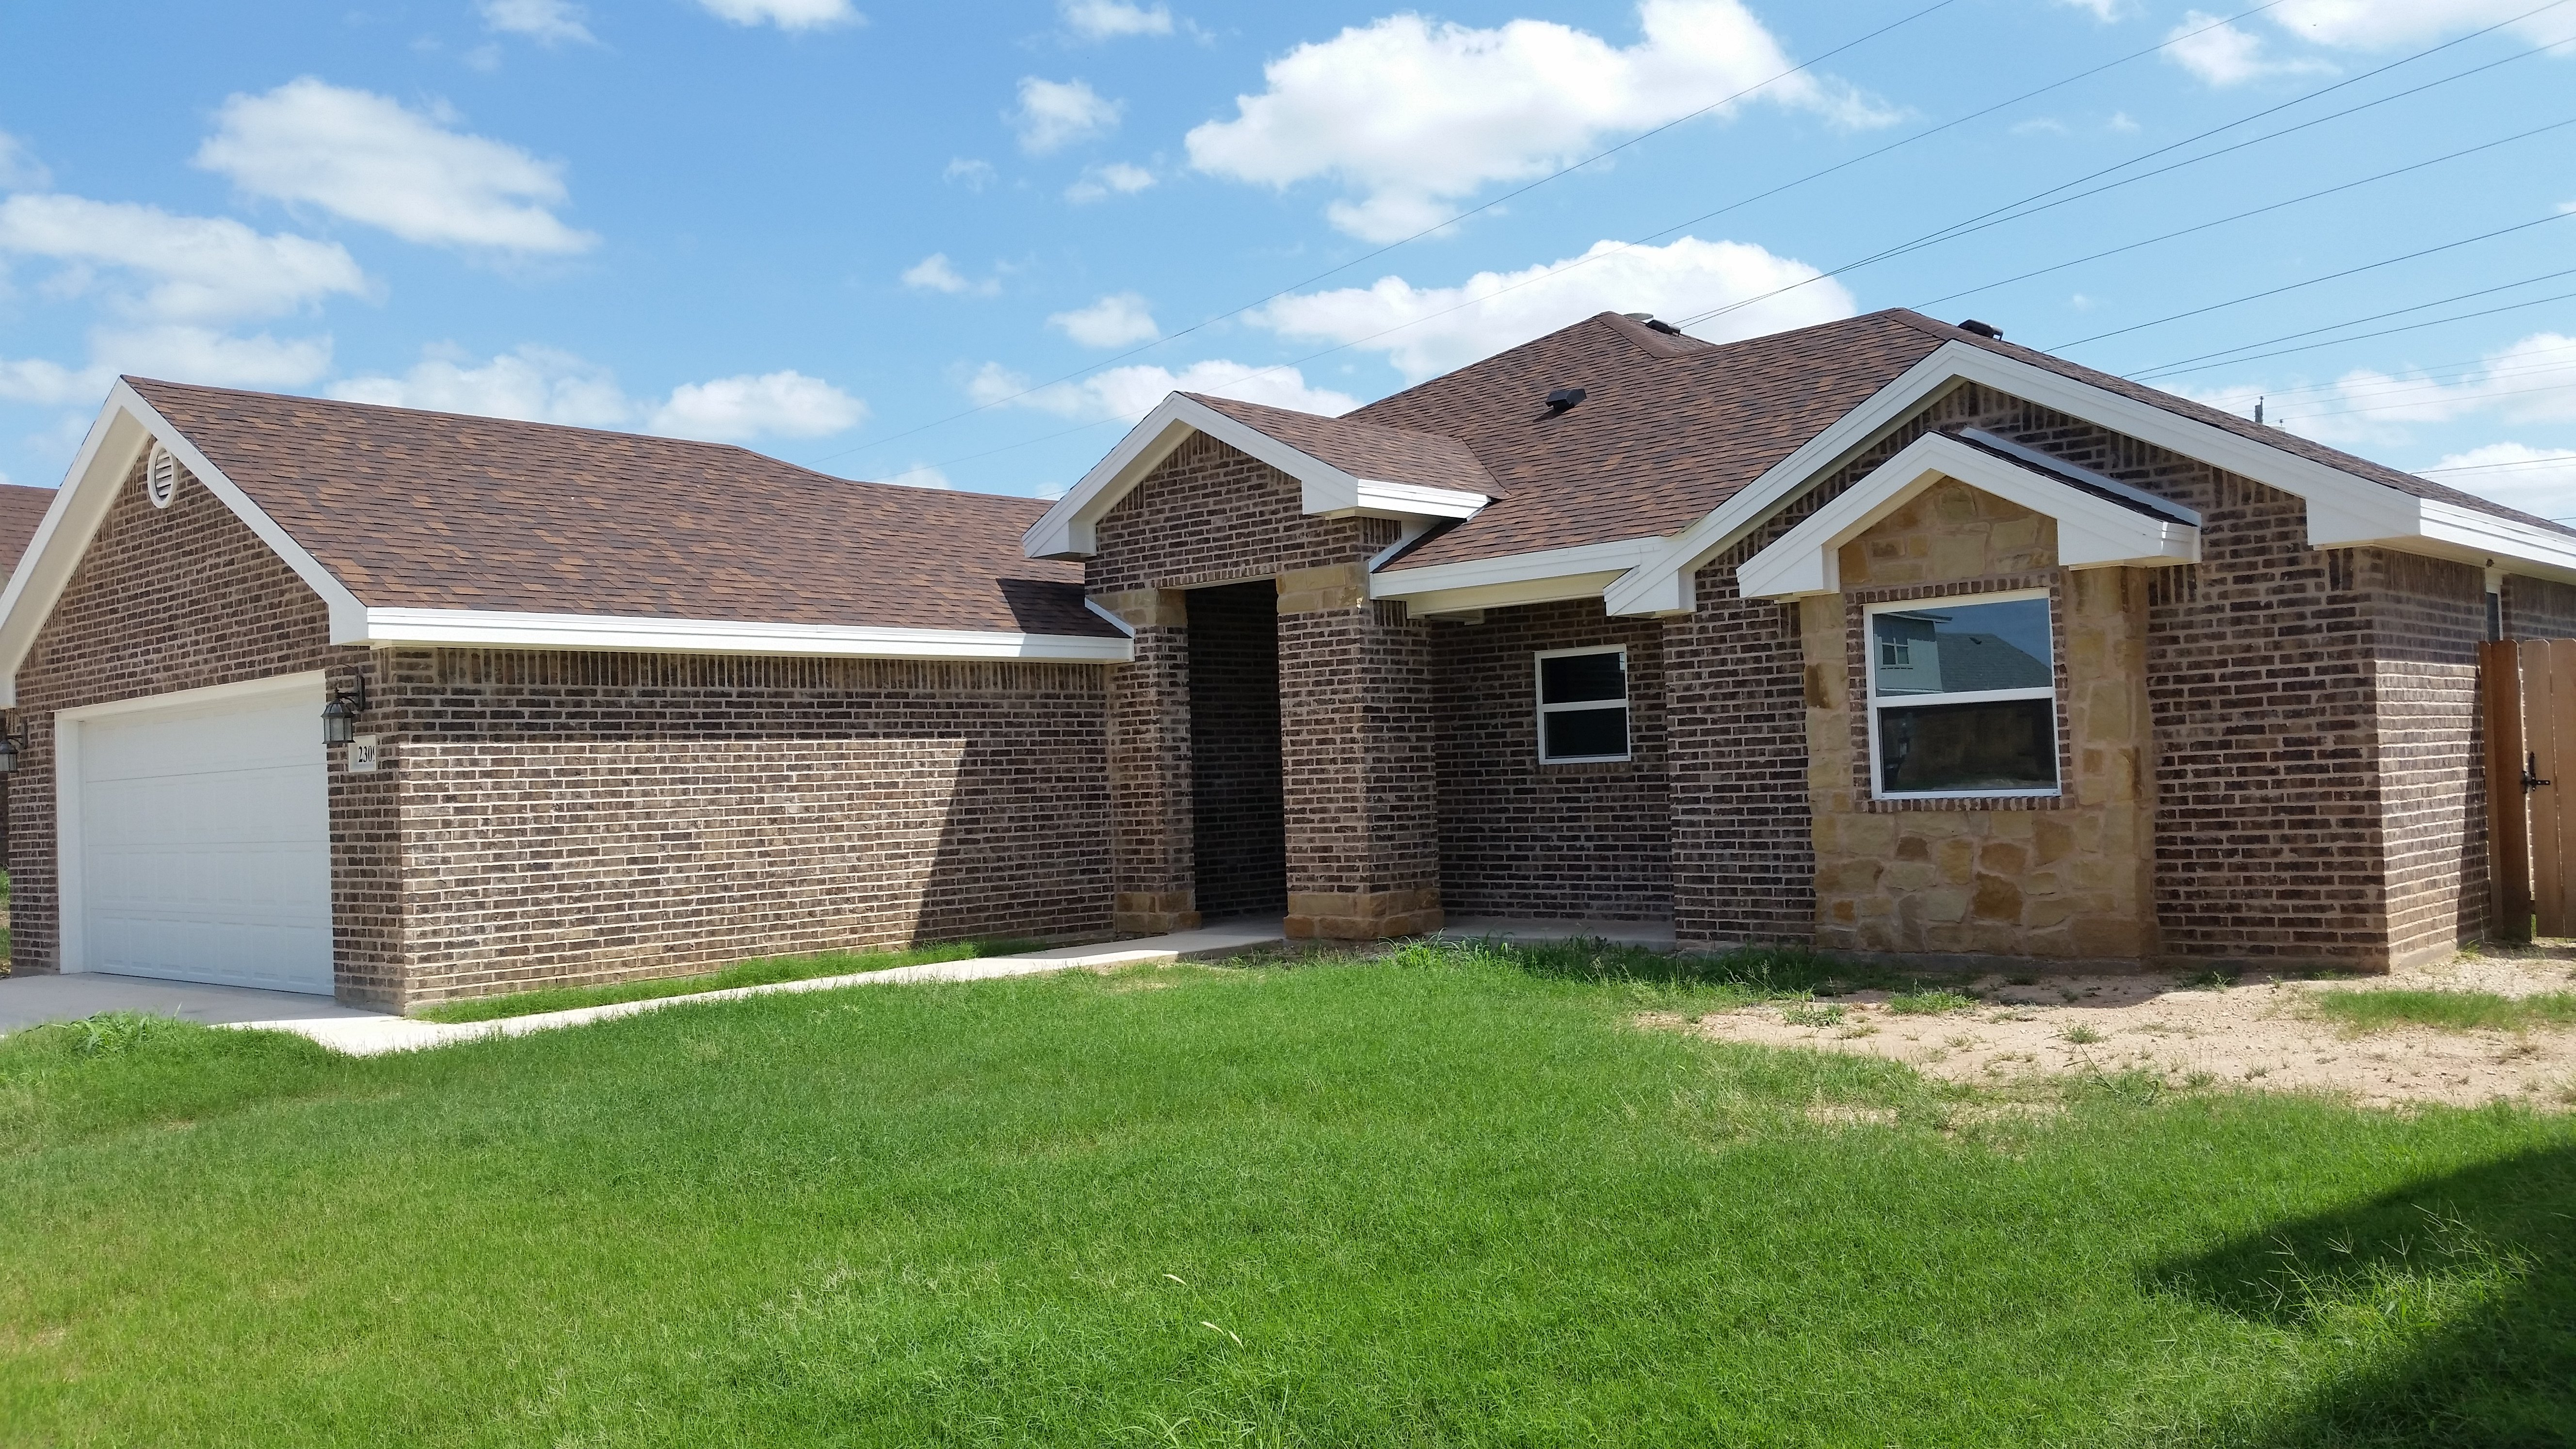 Gallery of custom built homes in san angelo tx for Home builders san angelo tx